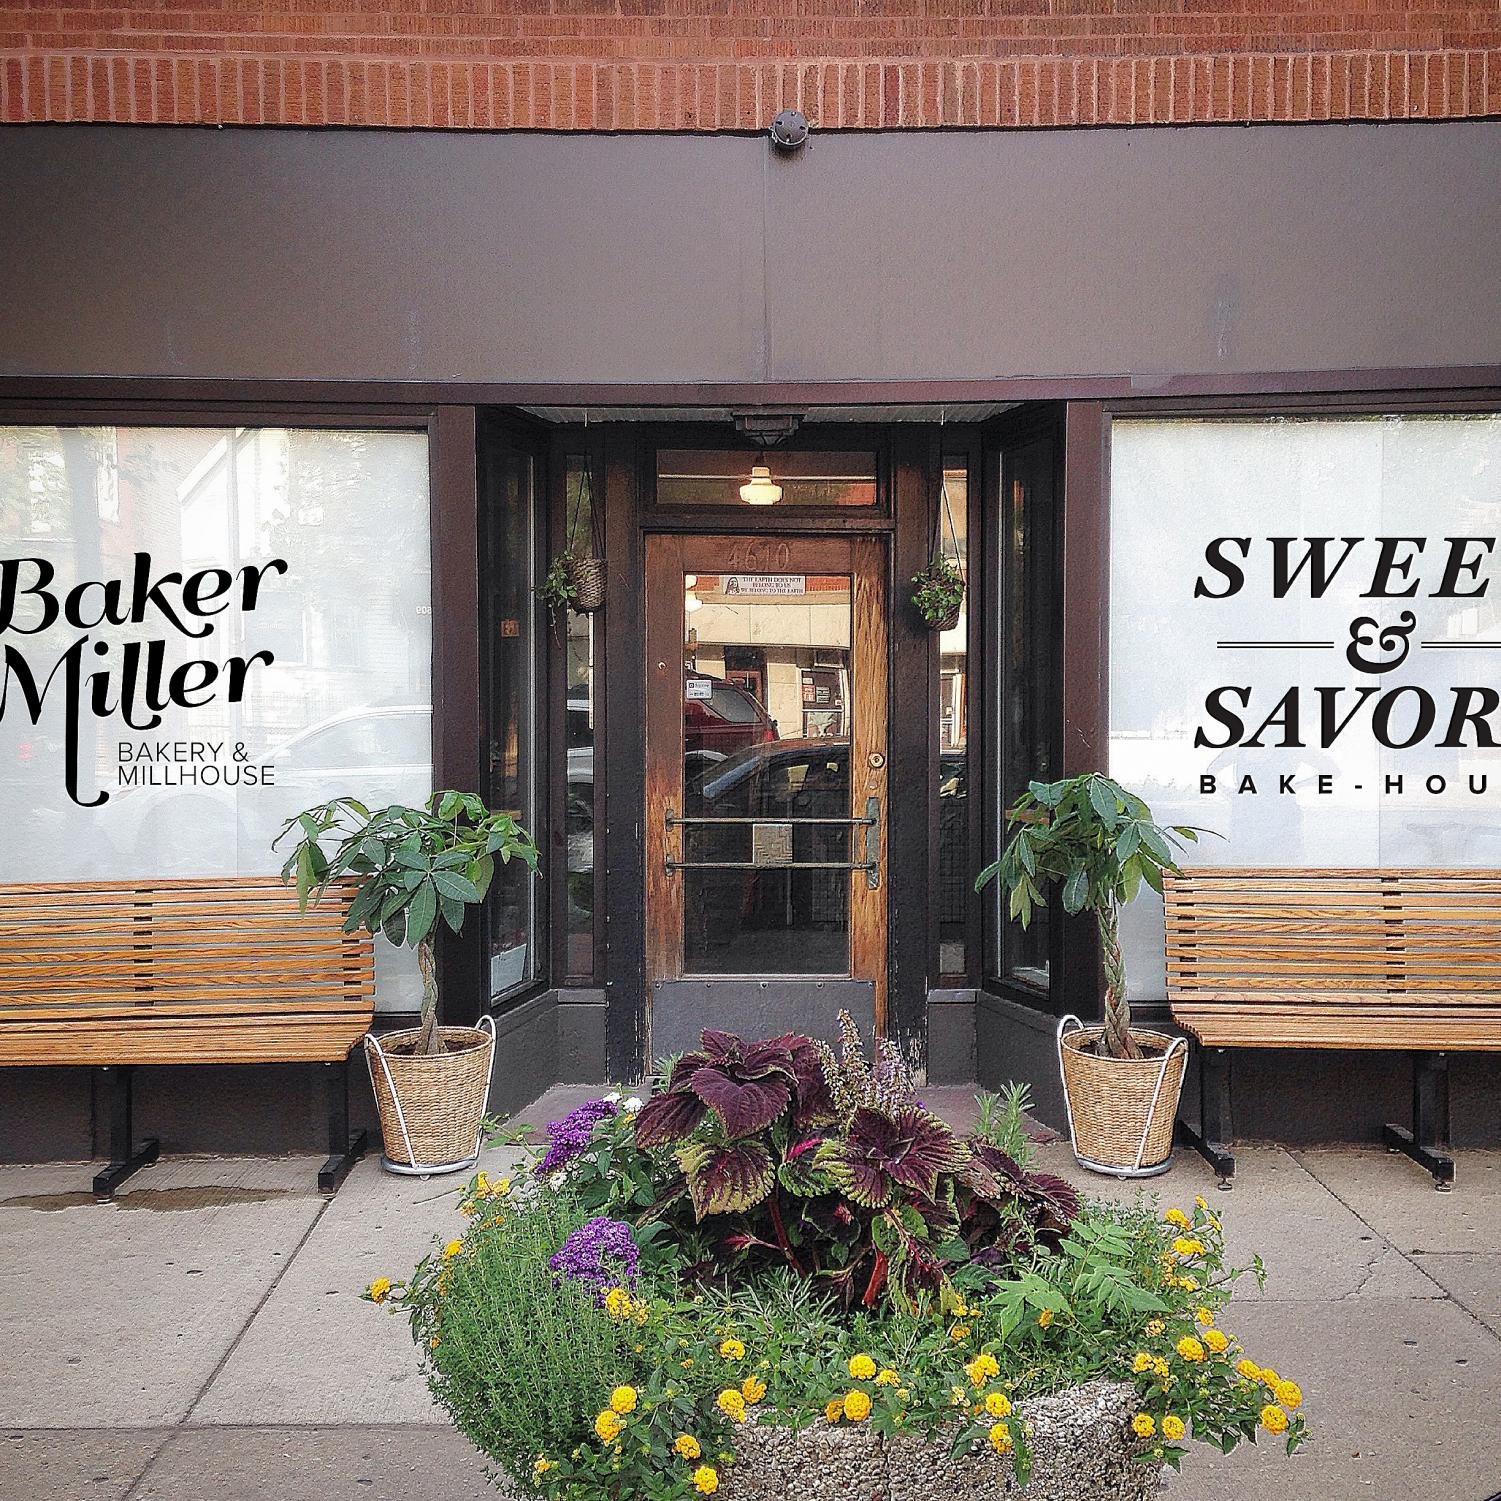 Dave and Megan Miller are striving to open their Lincoln Square bakery, Baker Miller, 4610 N. Western Ave., by Oct. 1 to meet the holiday demand.